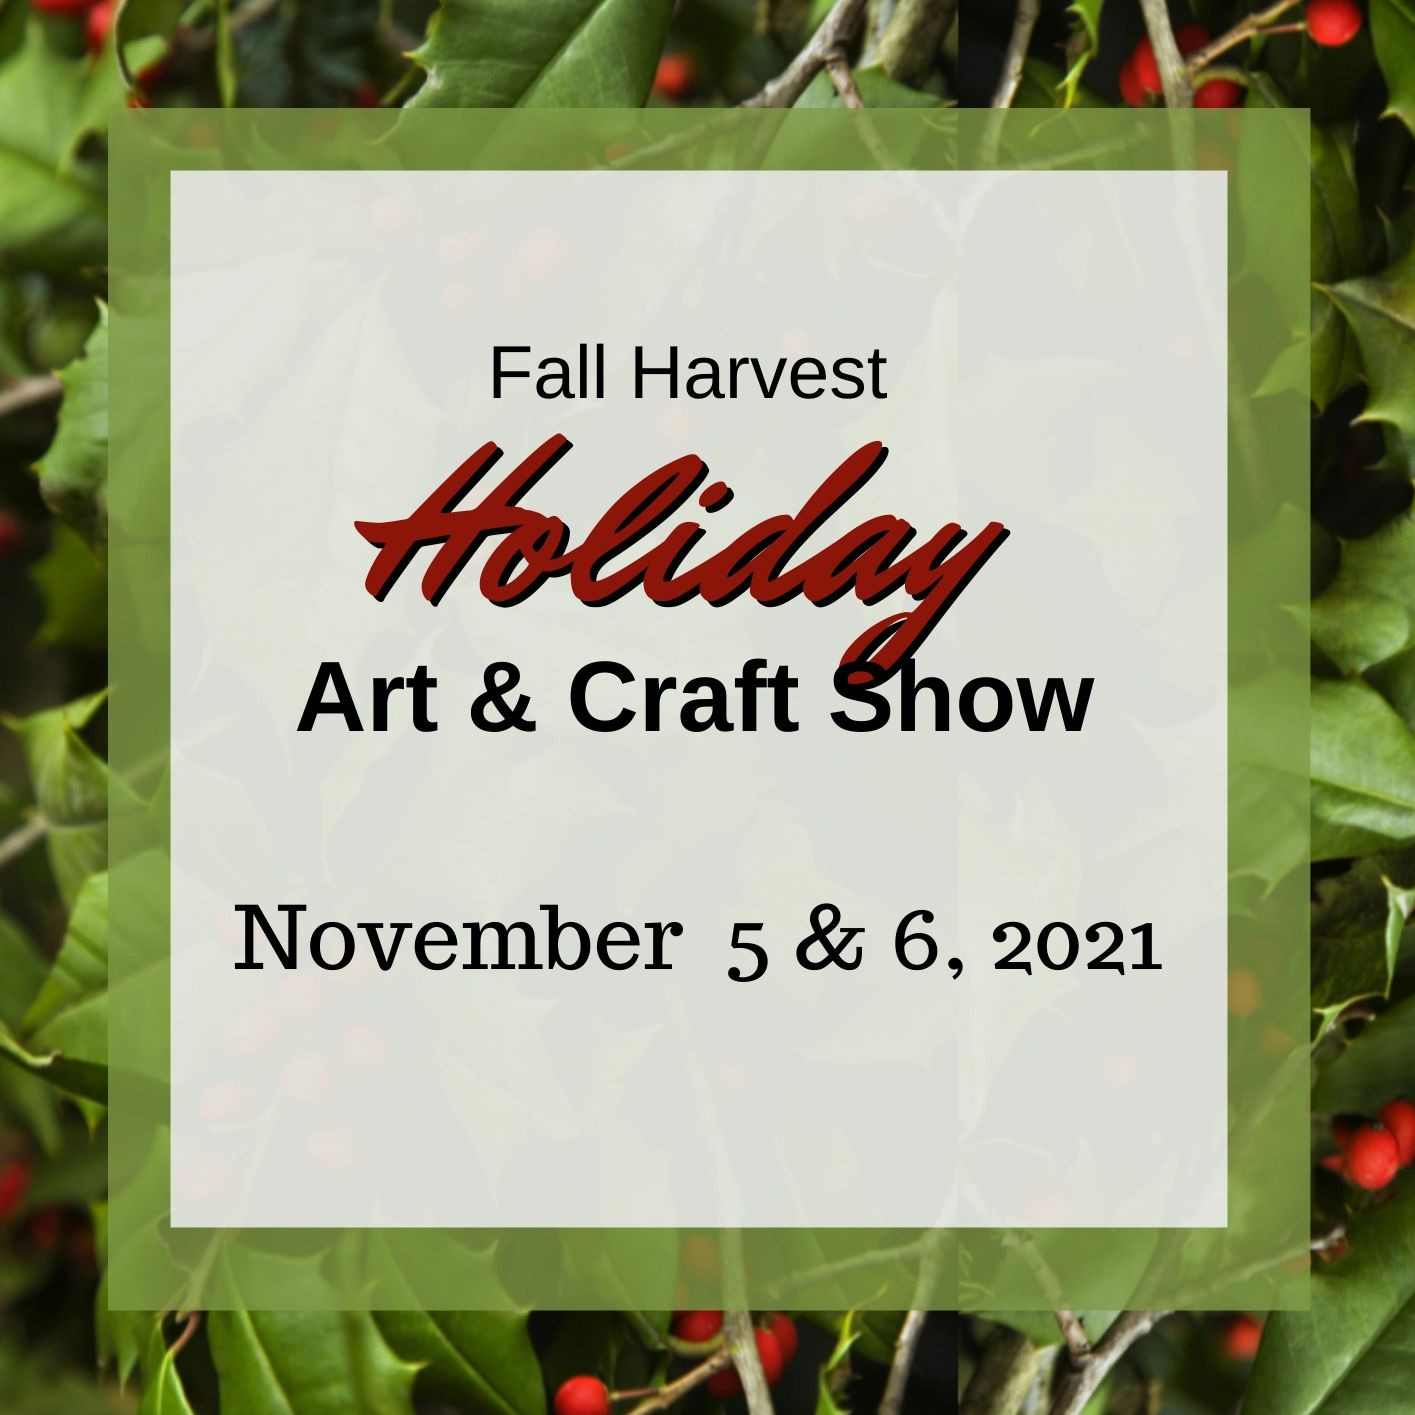 2021 Fall Harvest Holiday Art and Craft Show